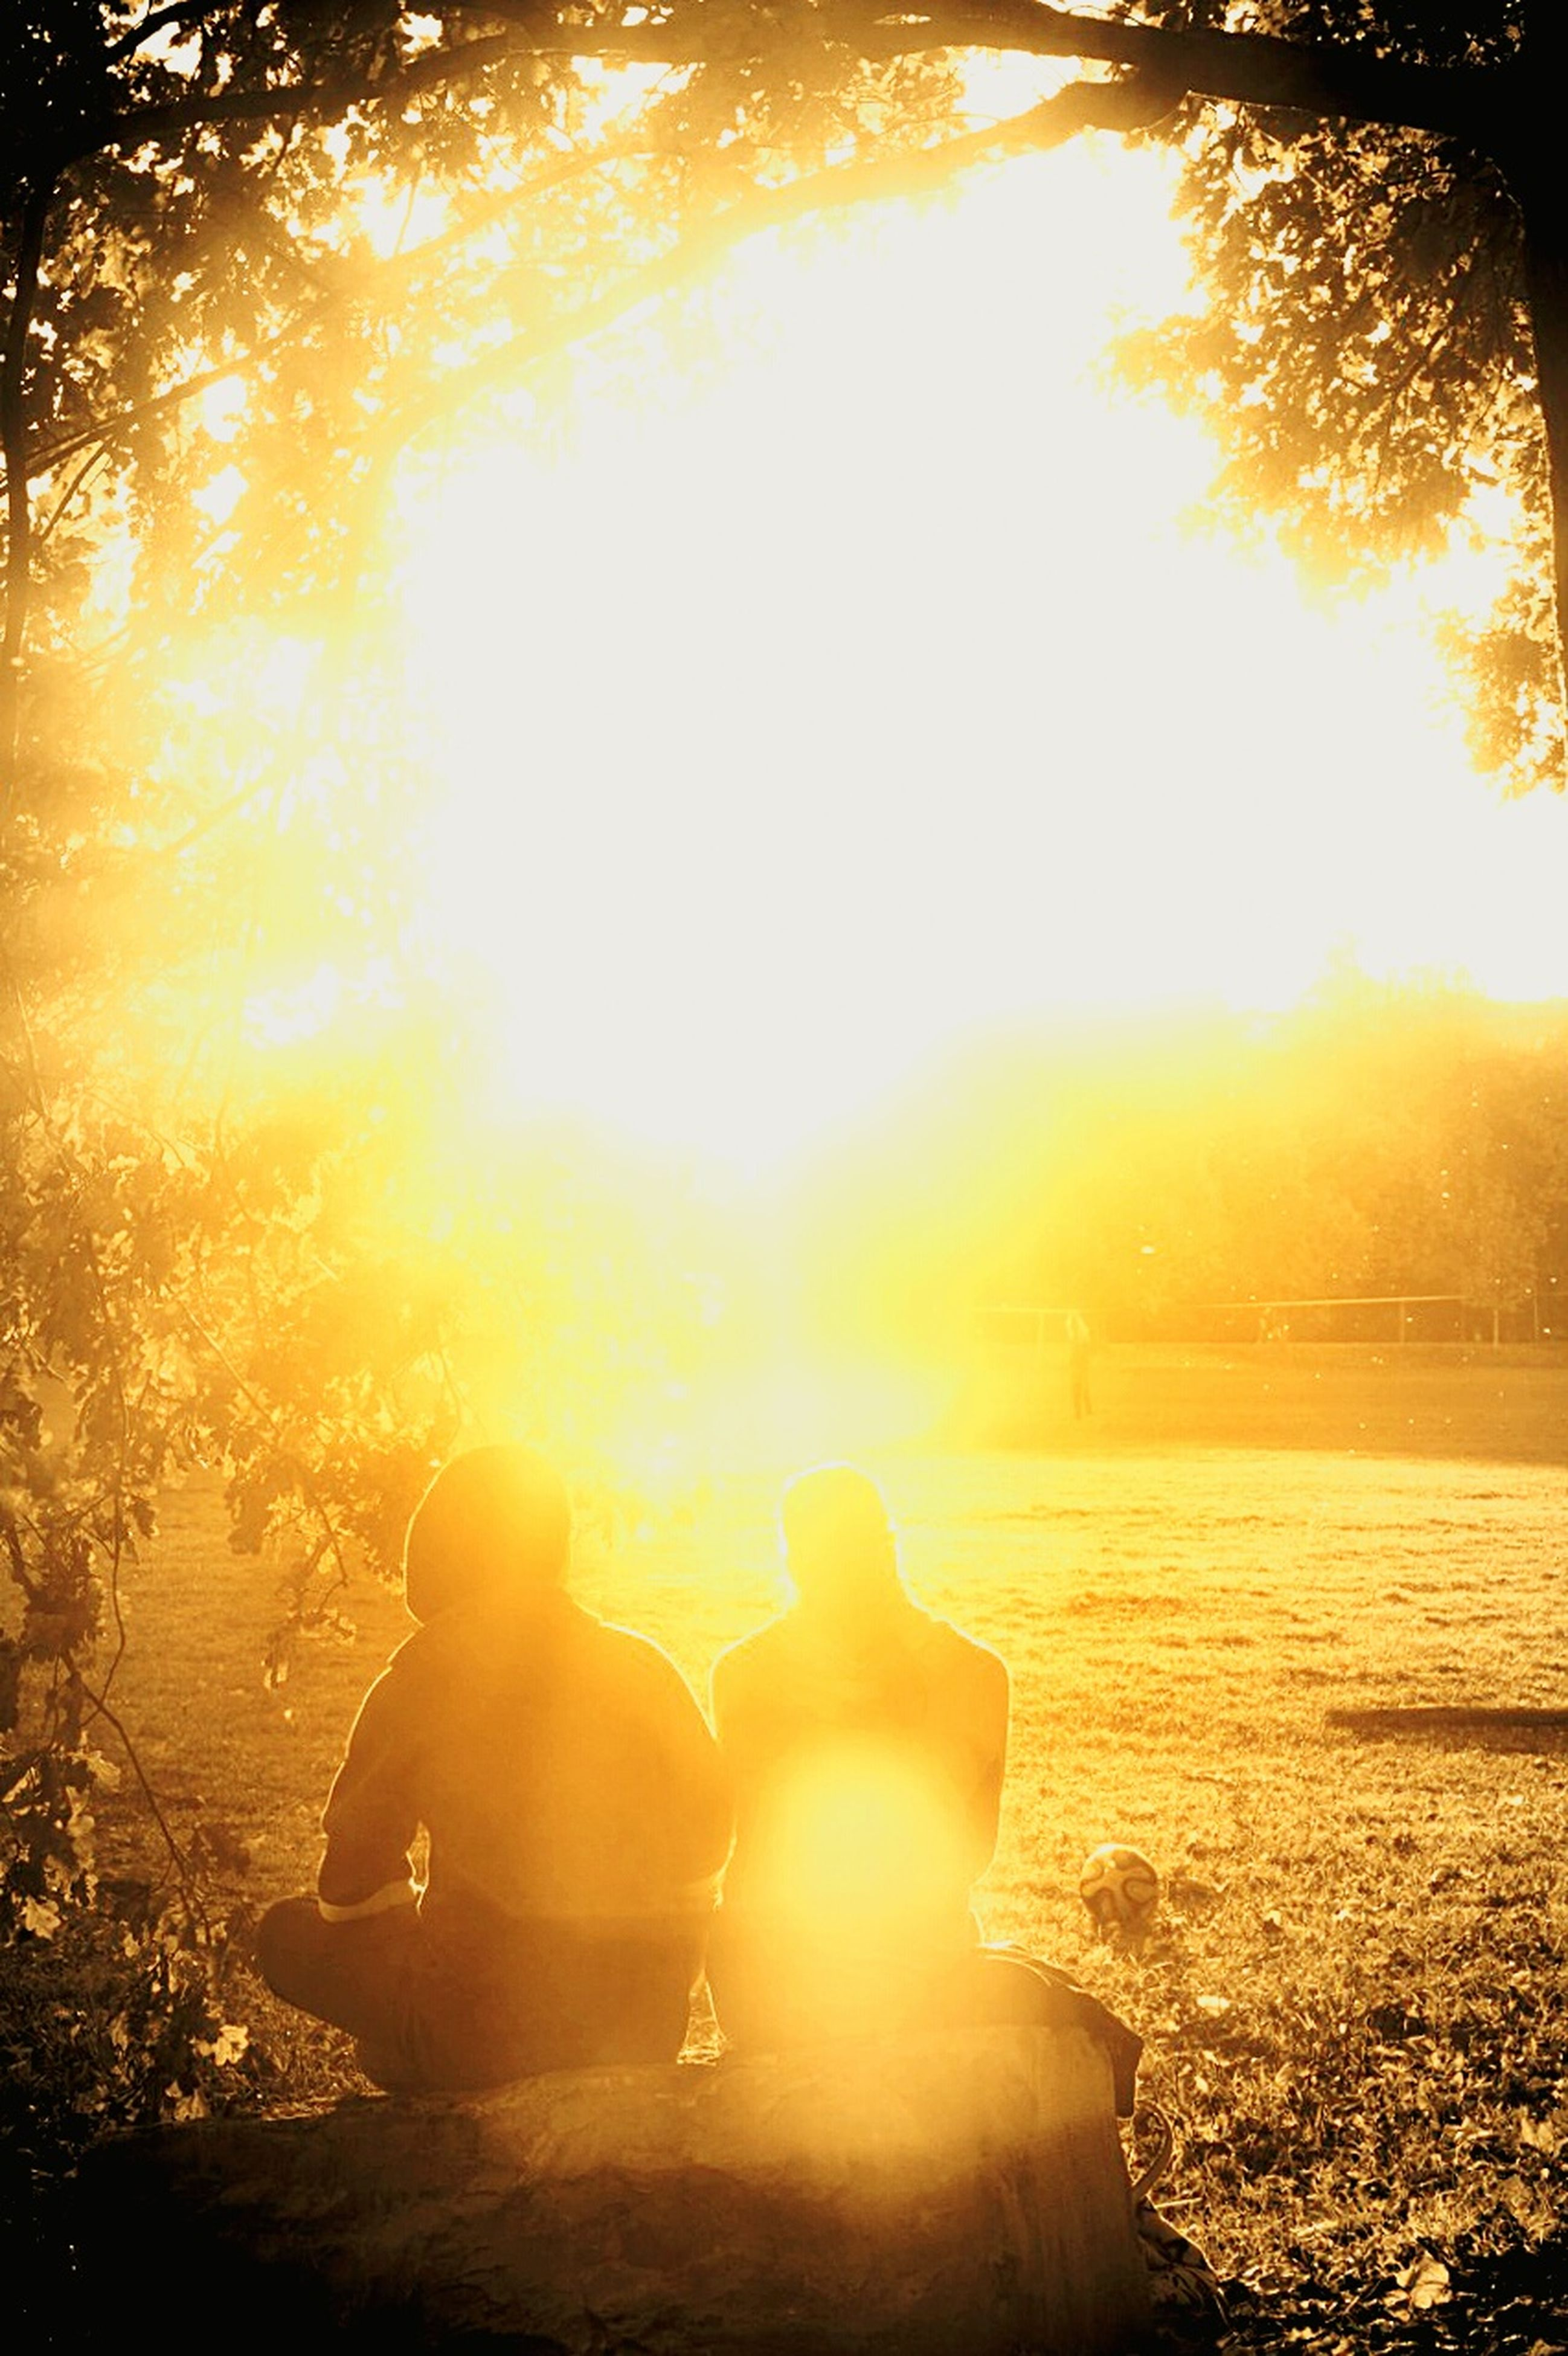 sun, lifestyles, sunbeam, sunset, leisure activity, lens flare, sunlight, water, togetherness, tree, men, person, orange color, reflection, bright, back lit, rear view